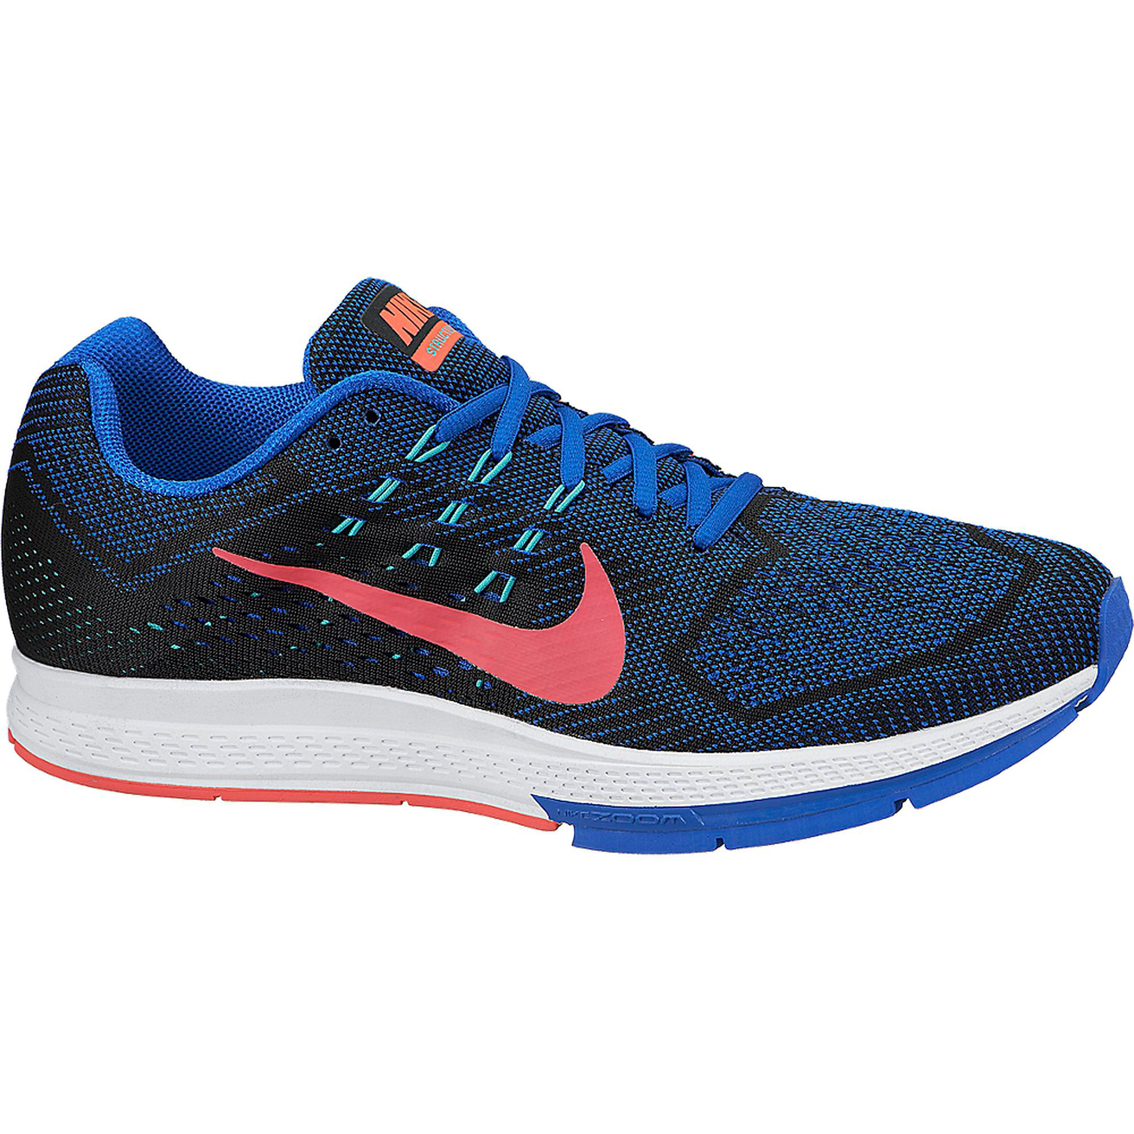 ad2c56a204b Nike Men s Structure 18 Running Shoes